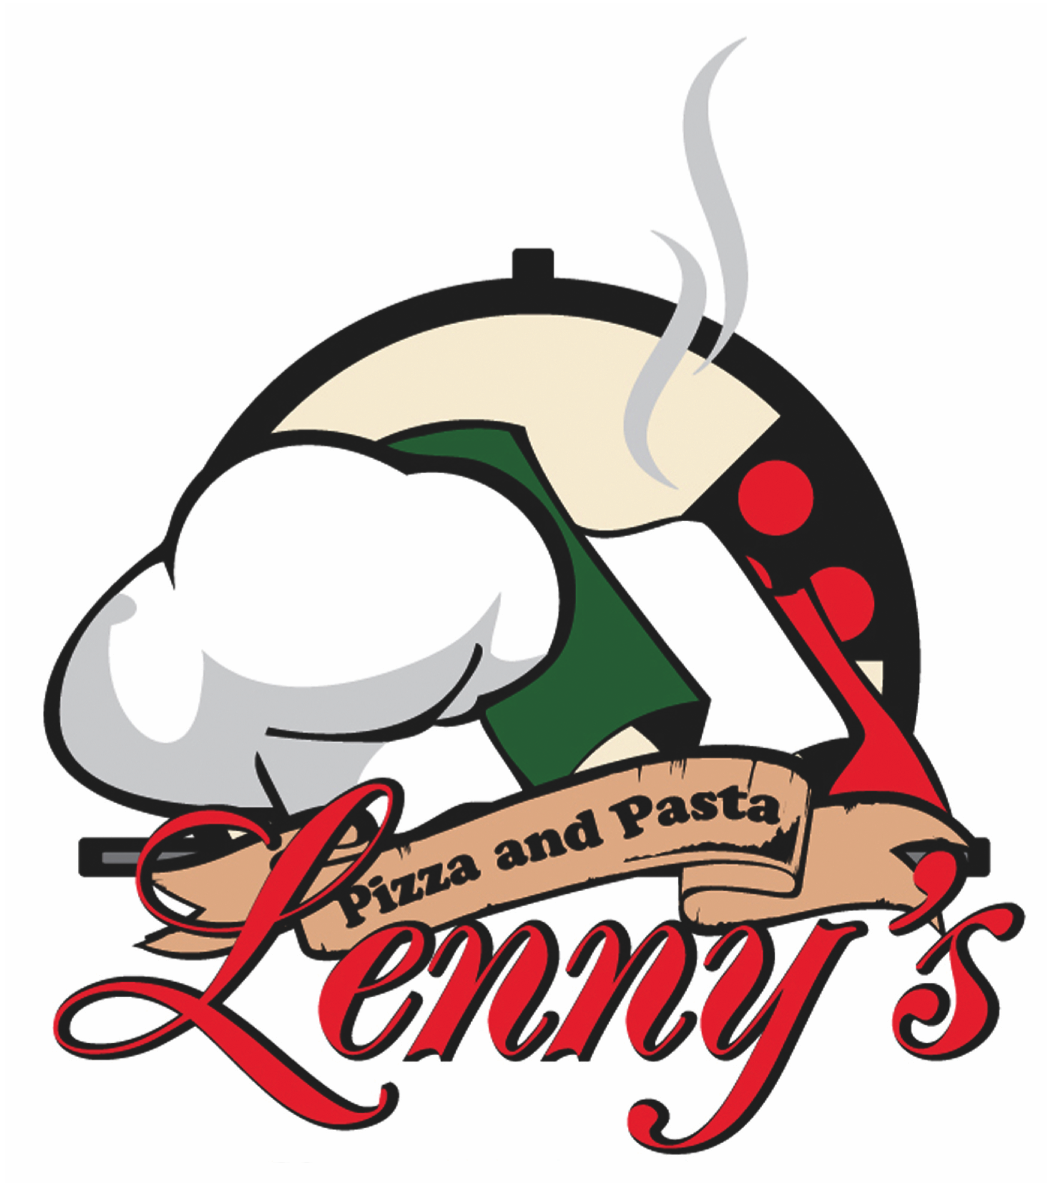 Lenny's House of Pizza